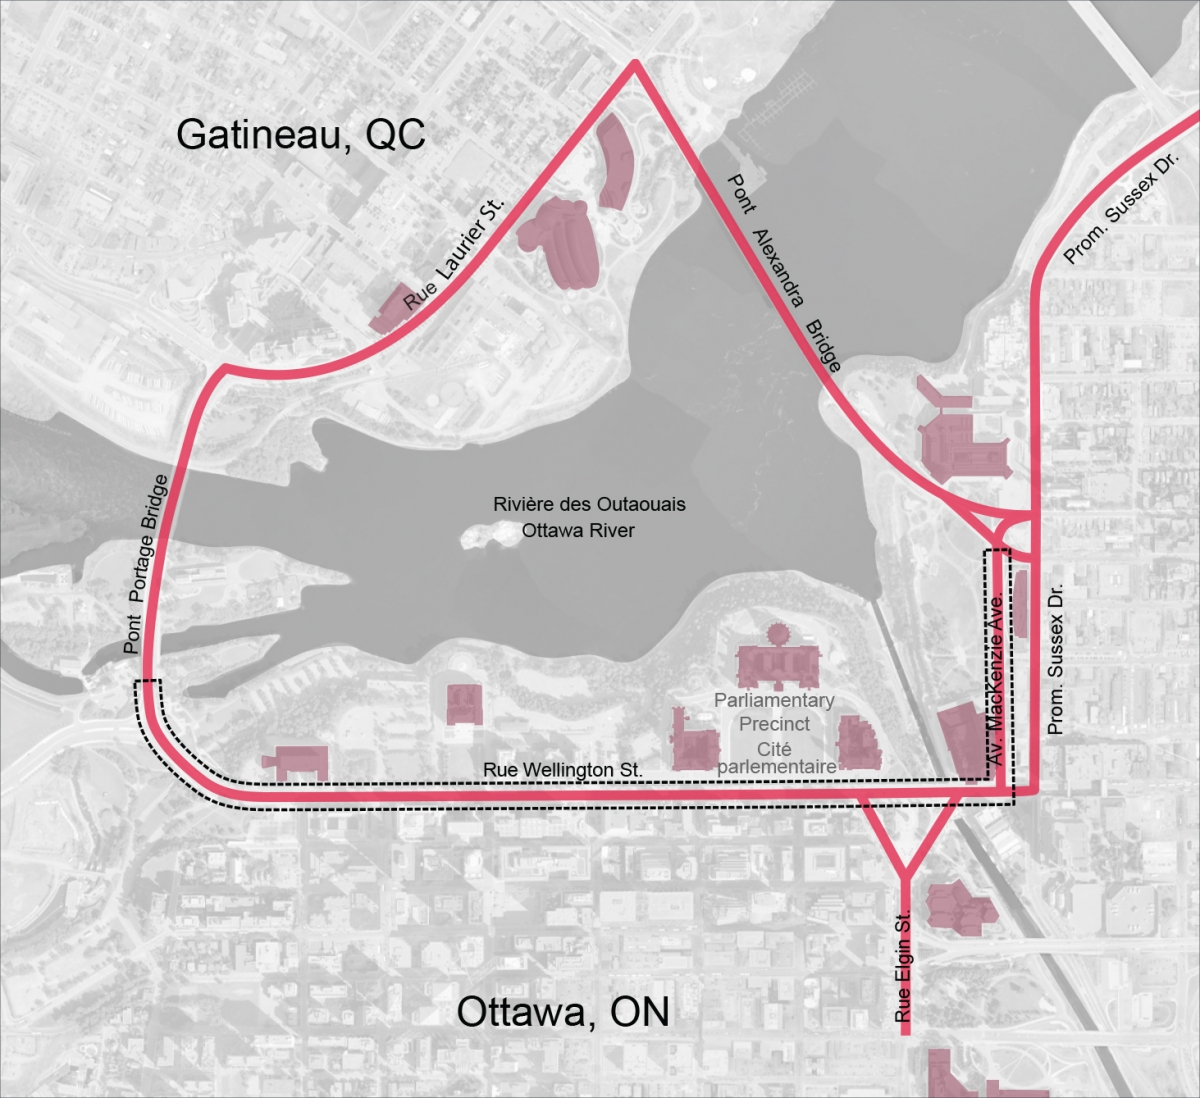 Map showing the route of Confederation Boulevard running in a loop between Ottawa and Gatineau, using the Portage and Alexandra Bridges. The major road segments on the Ottawa side are Mackenzie Avenue and Wellington Street.